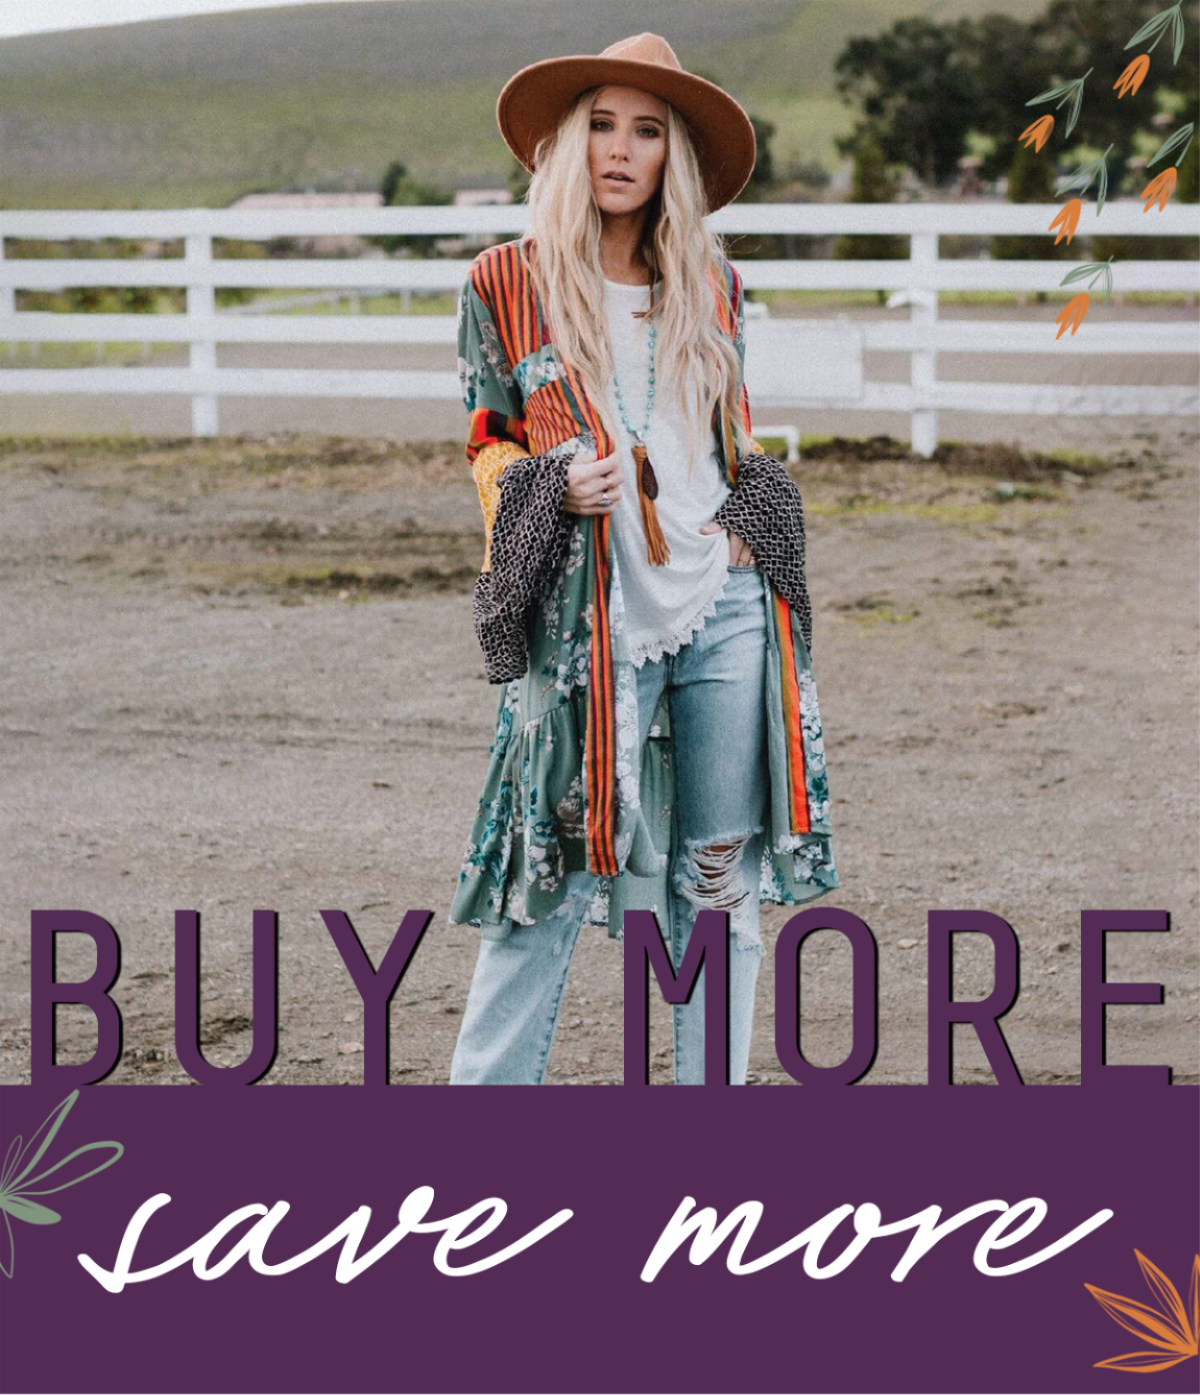 Buy More Save More Sale!